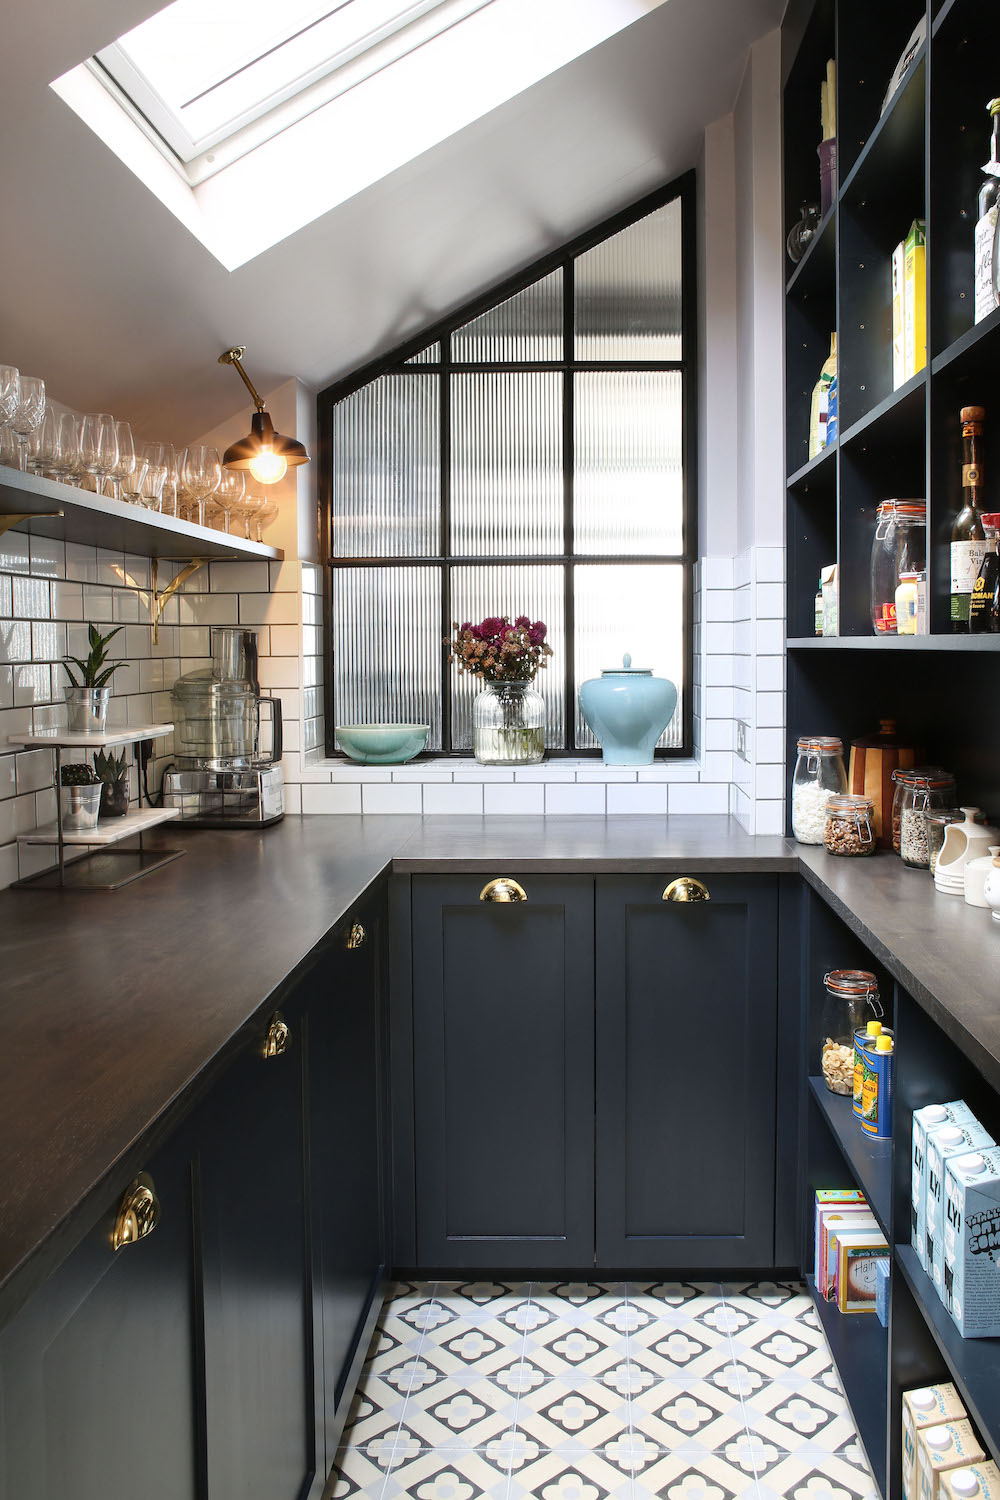 Kitchen Ceiling Lighting | Factorylux for North London Project